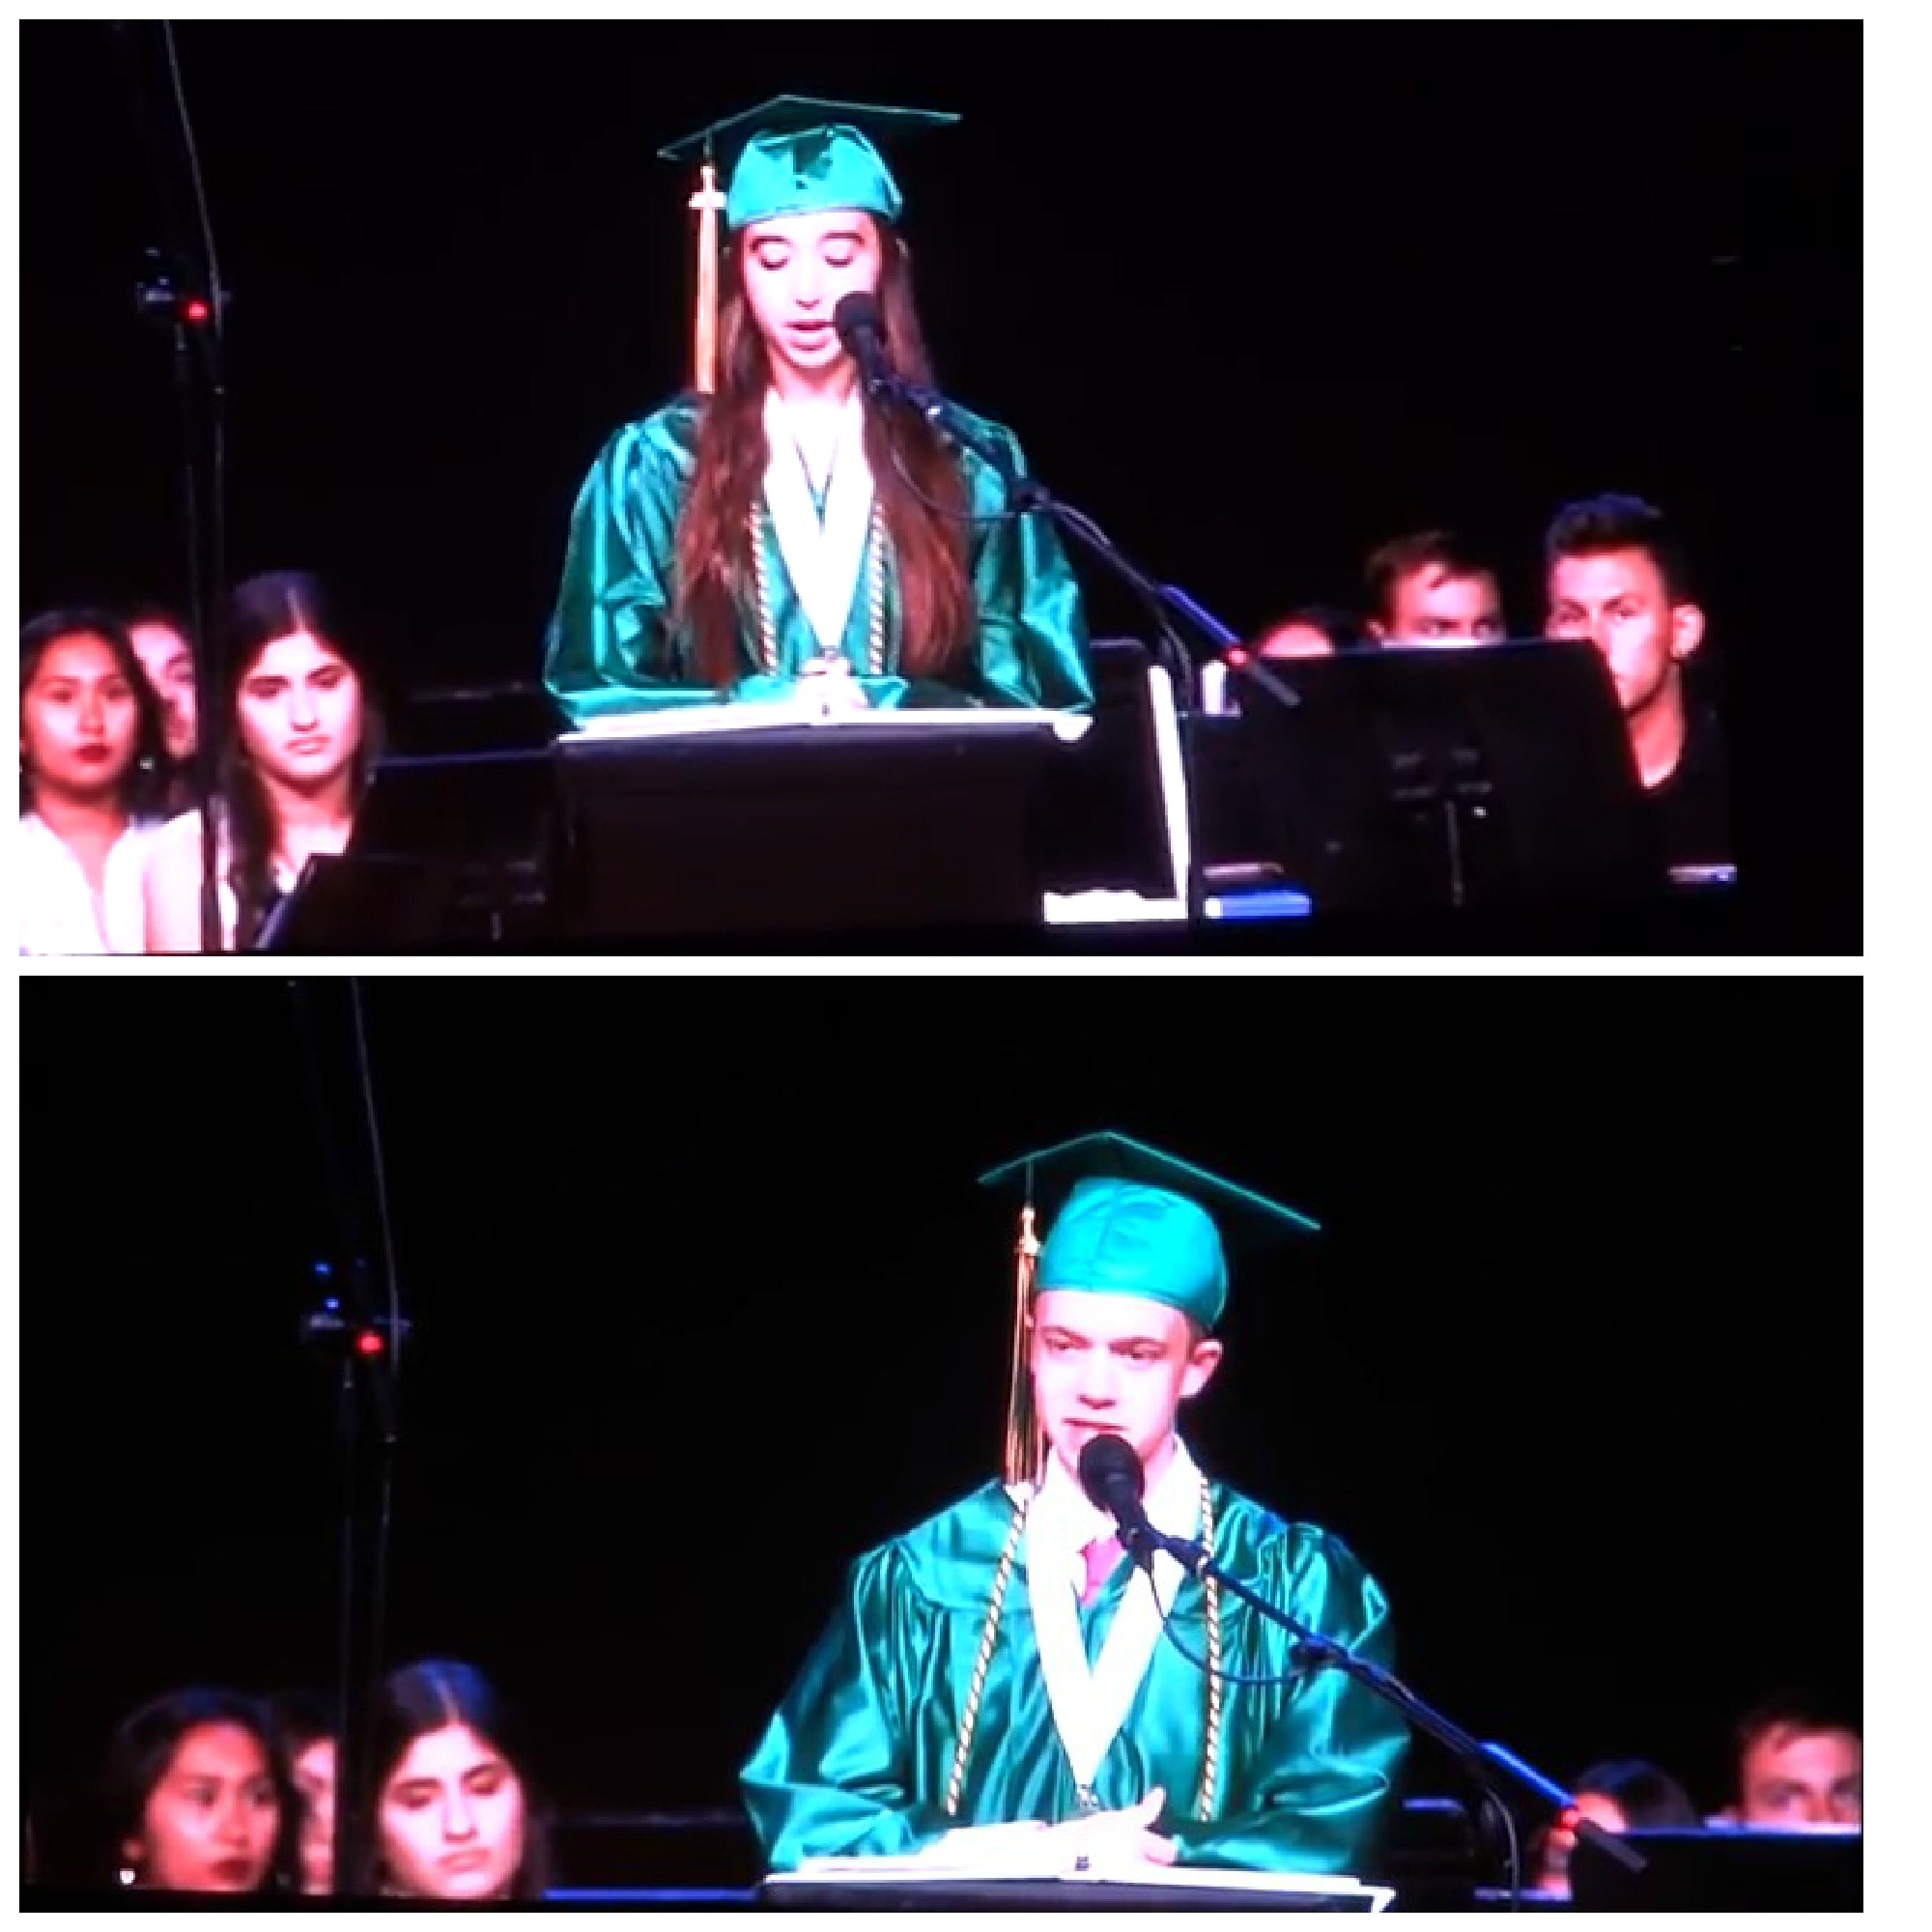 collage of two teenagers in green graduation robes speaking at ceremony